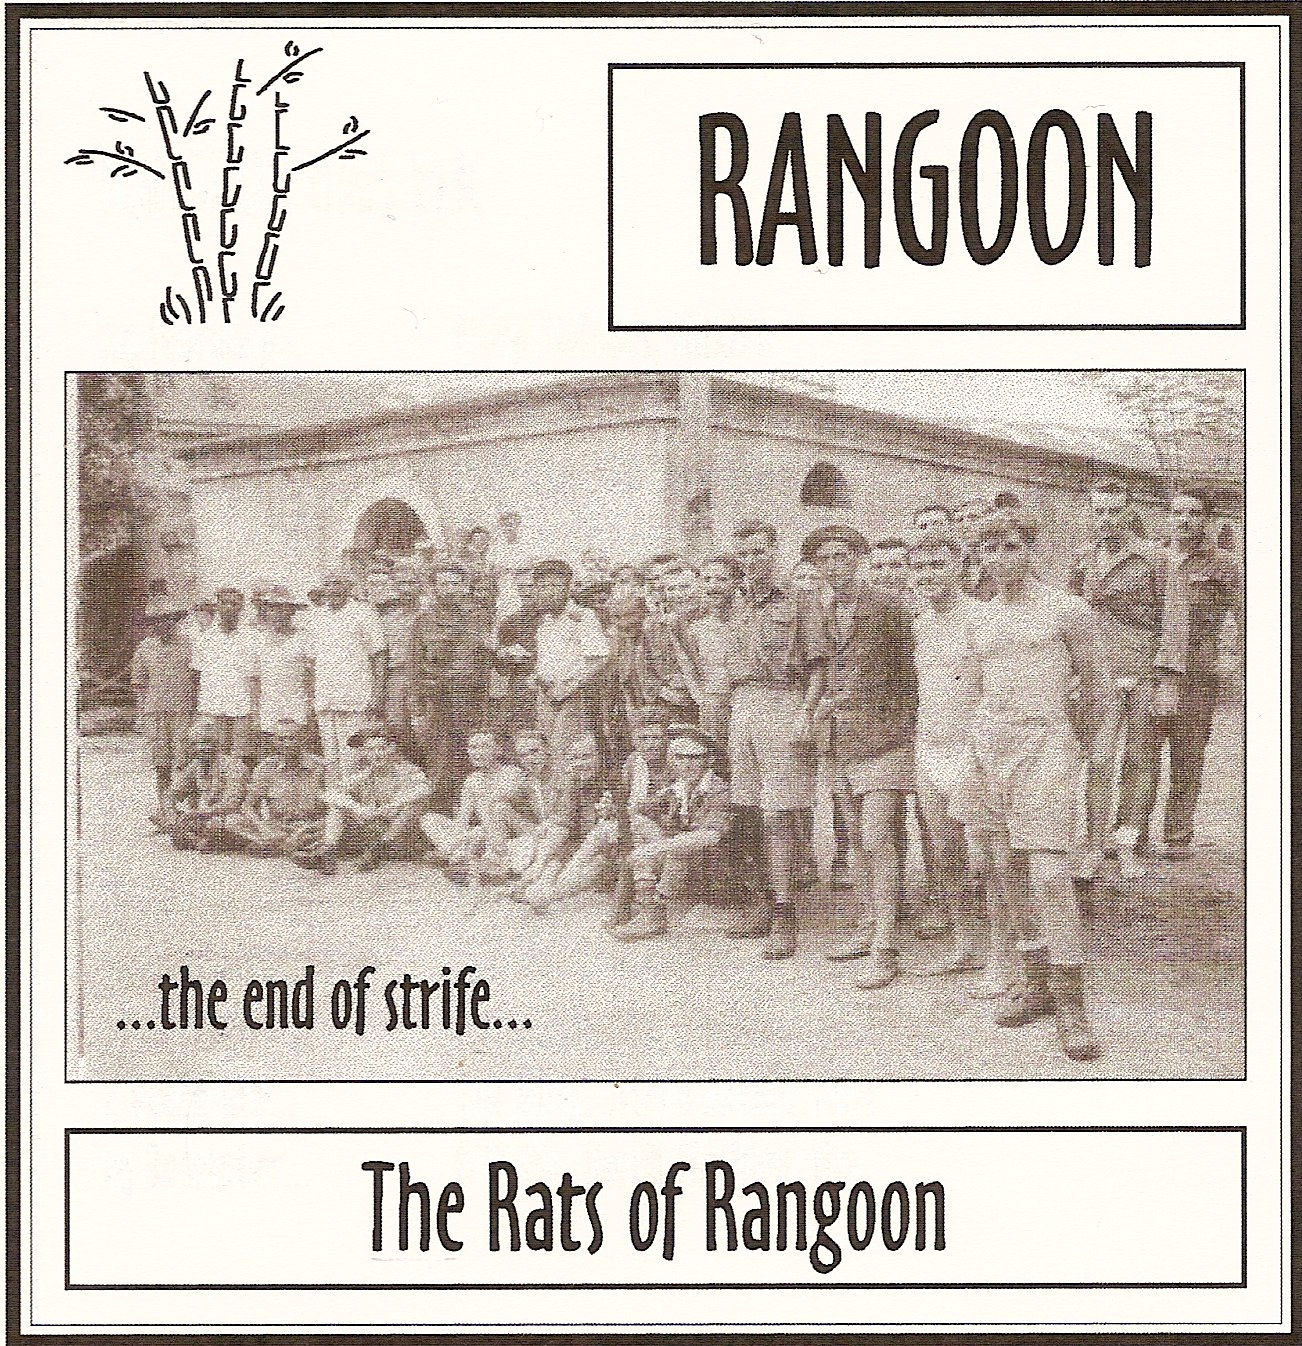 The Rats of Rangoon (2000)